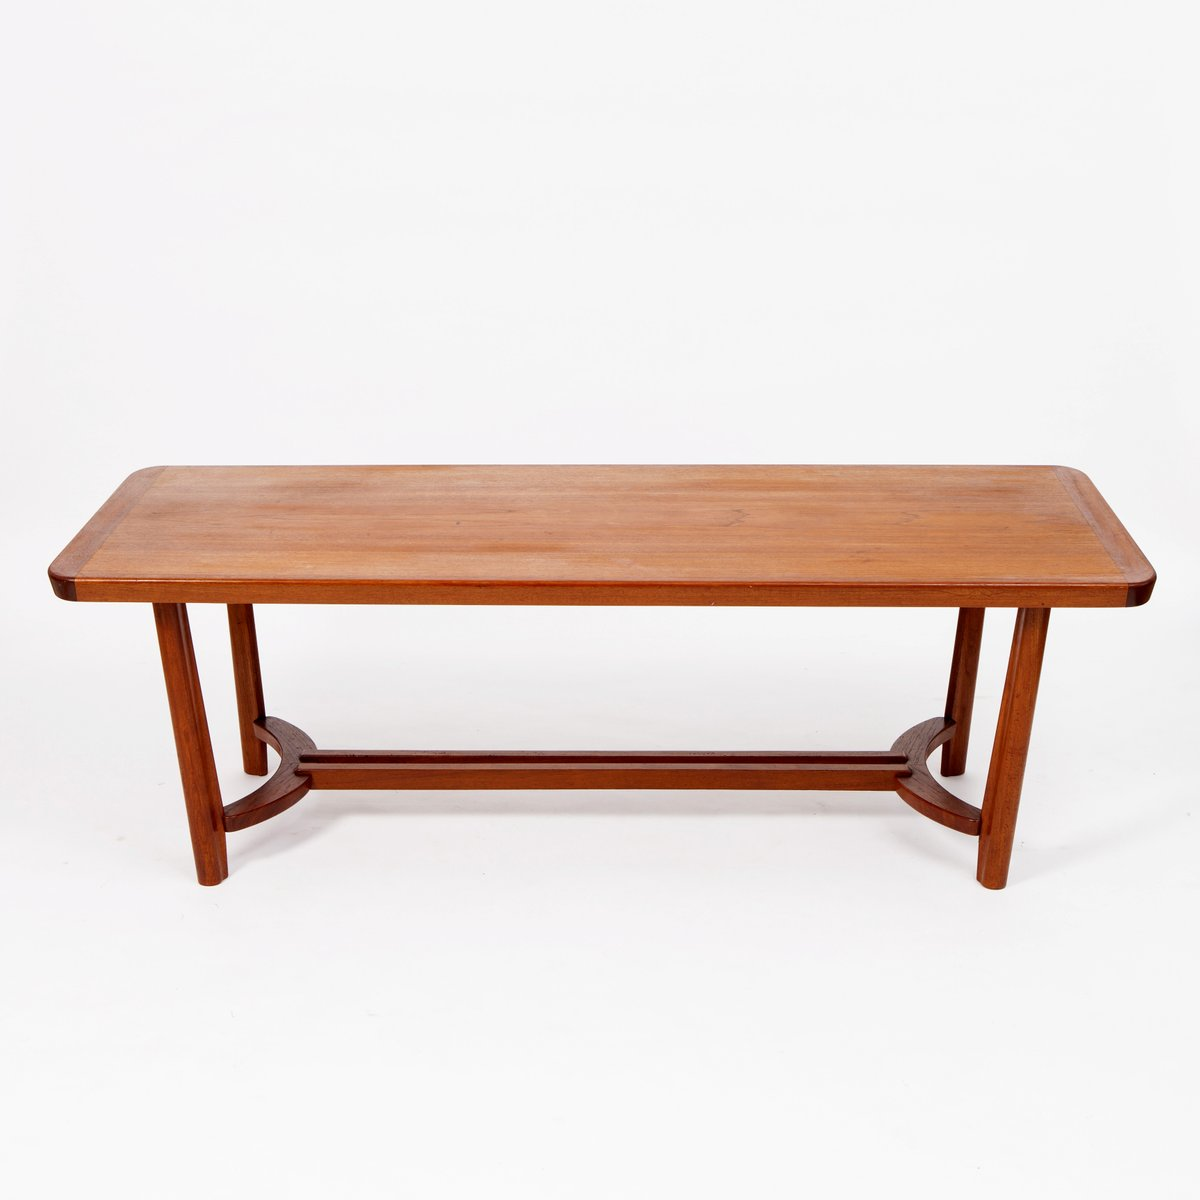 Teak Coffee Table South Africa: Mid-Century Scandinavian Teak Coffee Table For Sale At Pamono